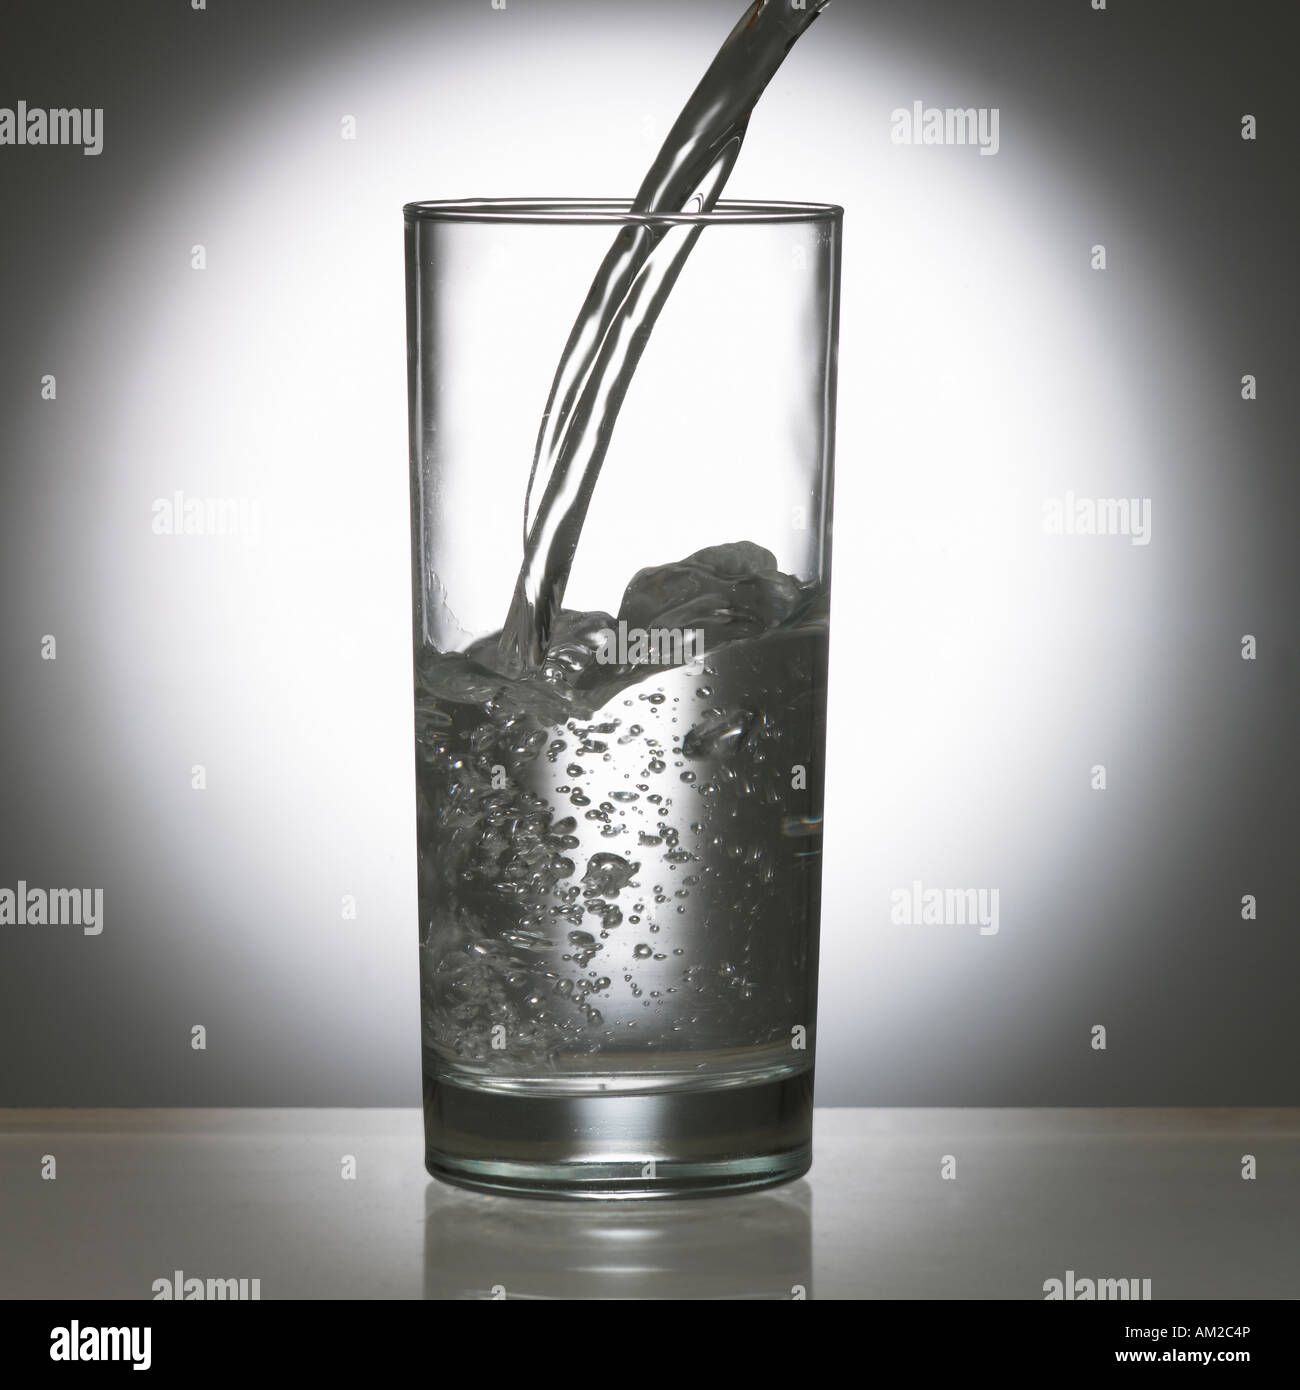 WATER POURING INTO GLASS TUMBLER - Stock Image